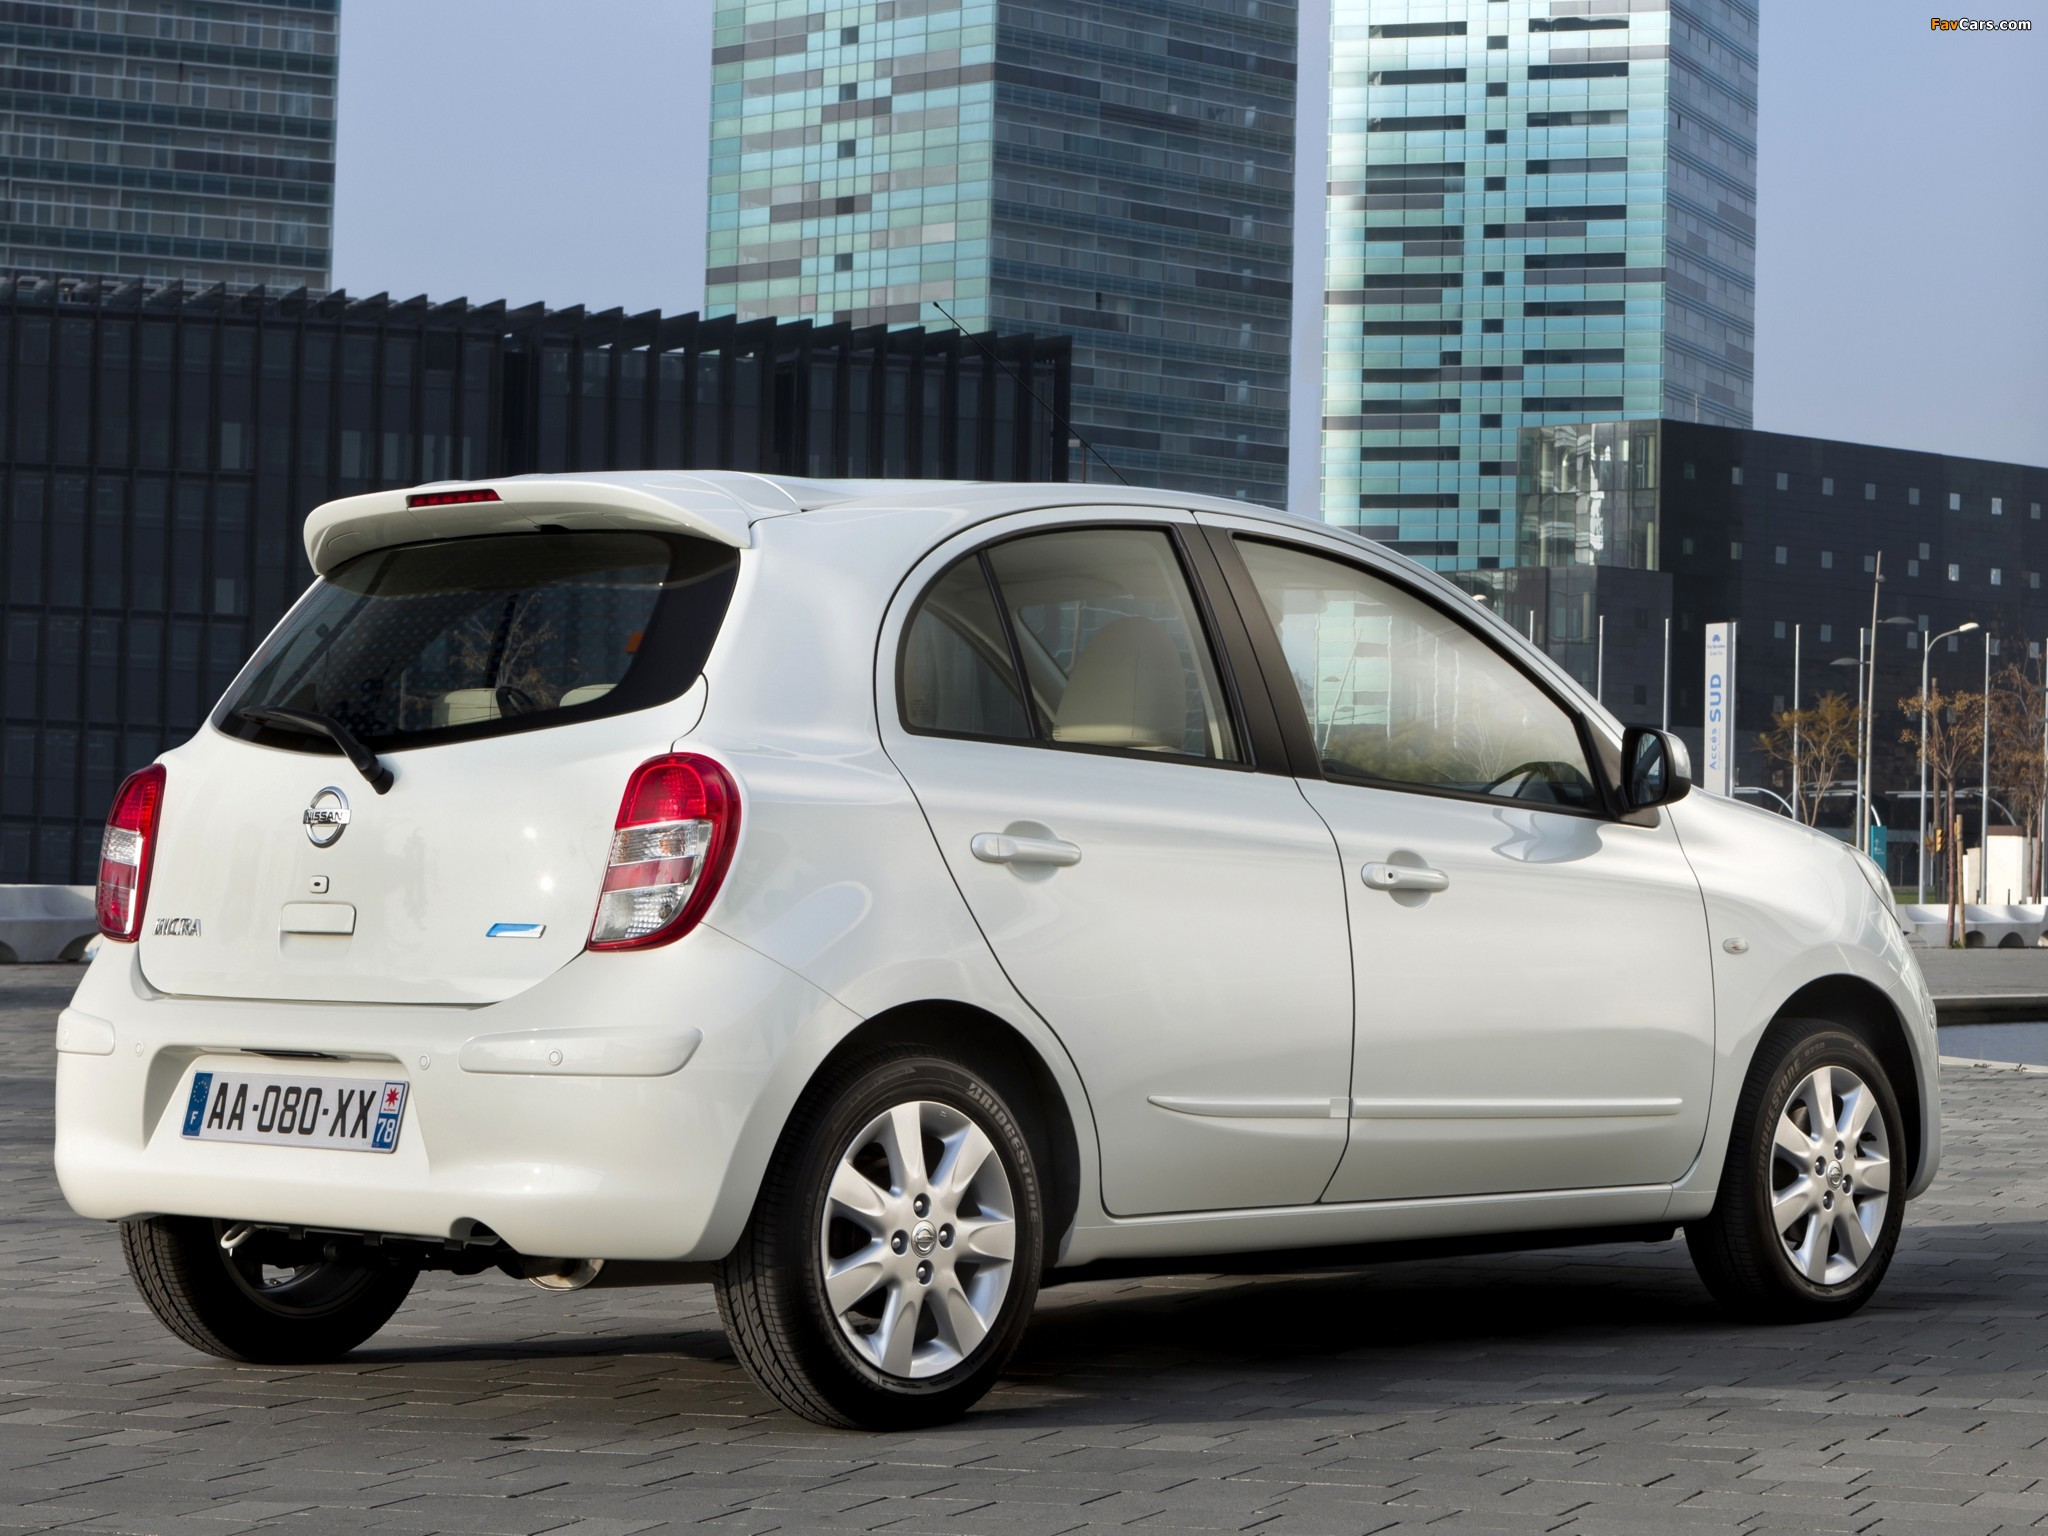 2011 nissan micra k13 pictures information and specs. Black Bedroom Furniture Sets. Home Design Ideas